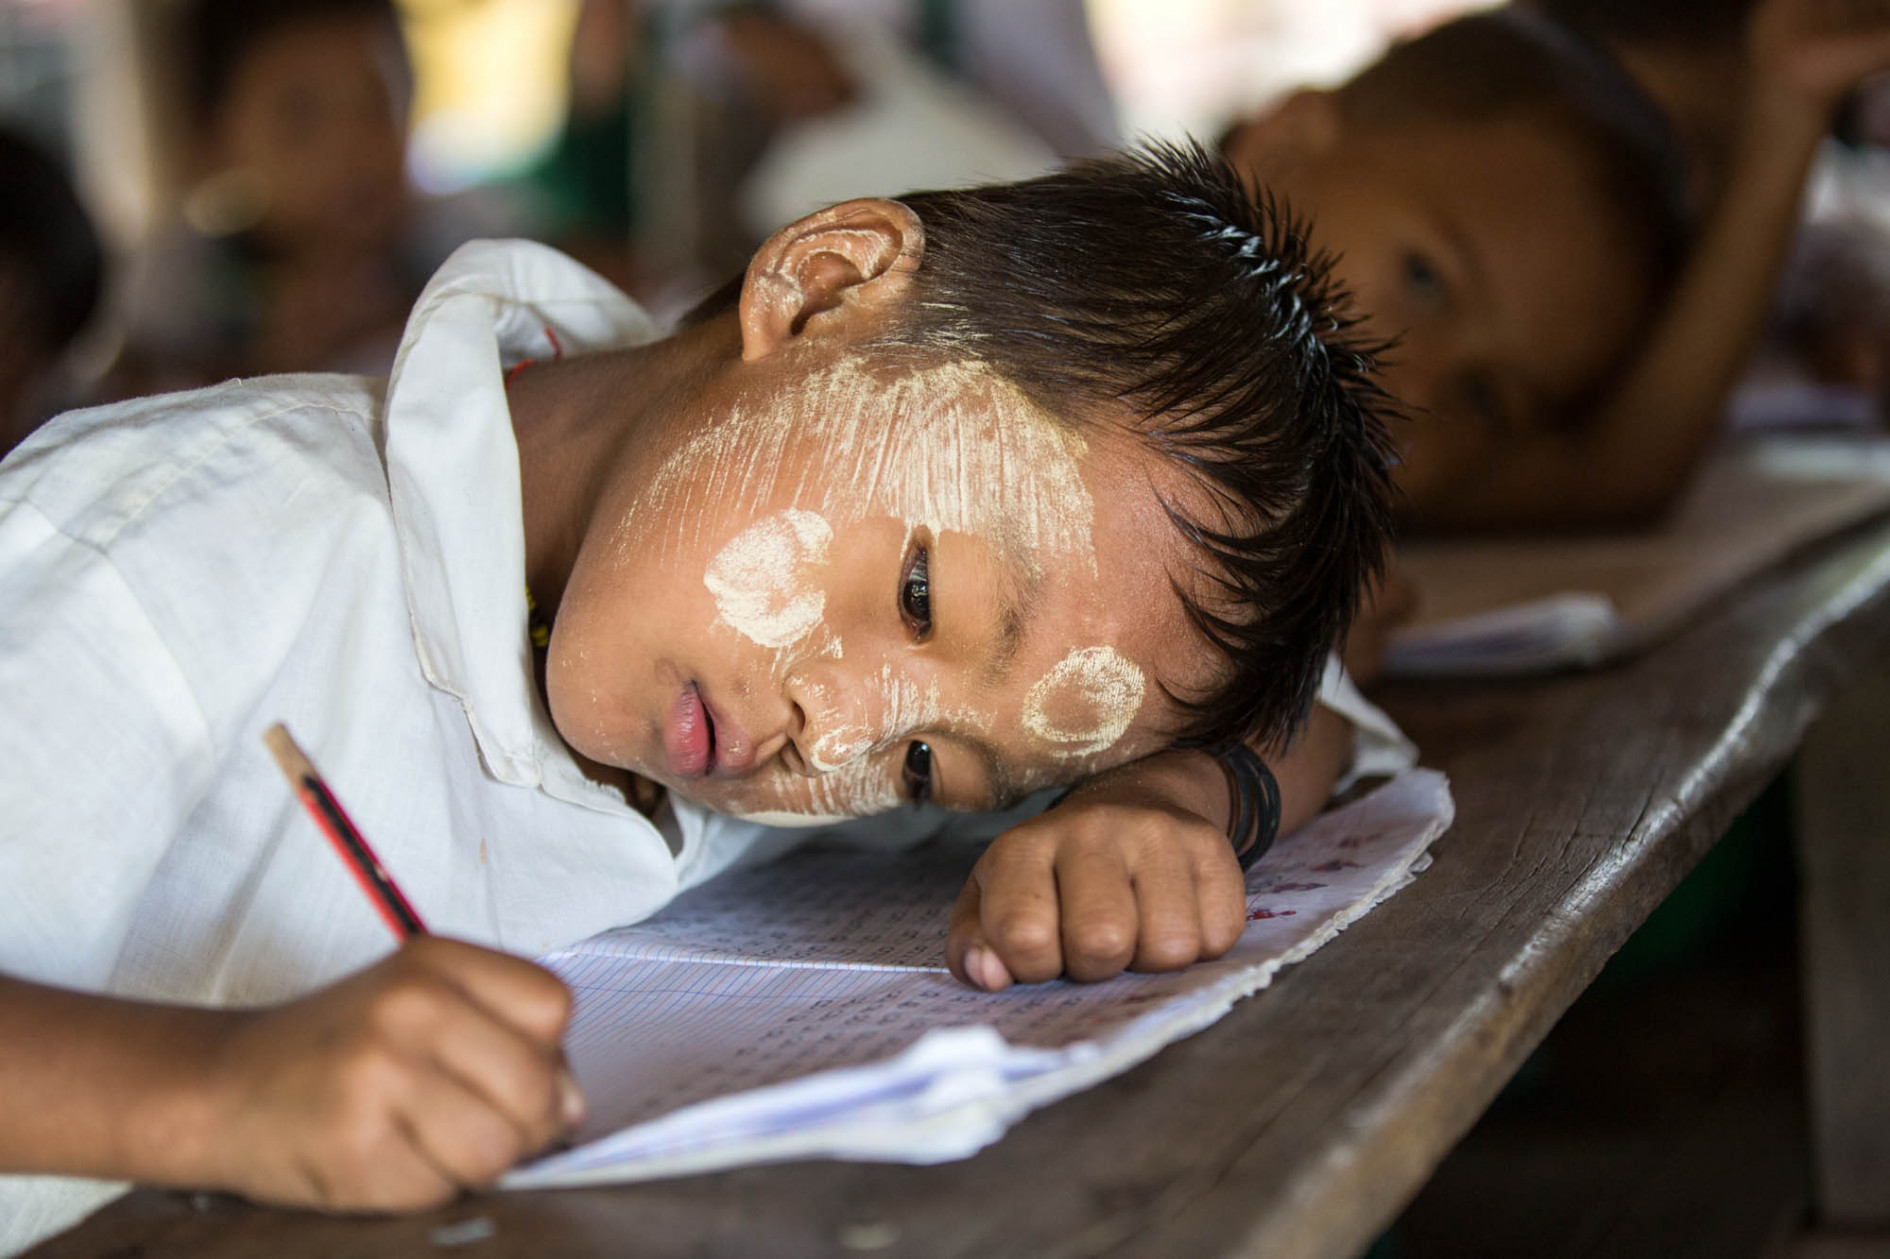 Burma/Myanmar: Education and practical skills